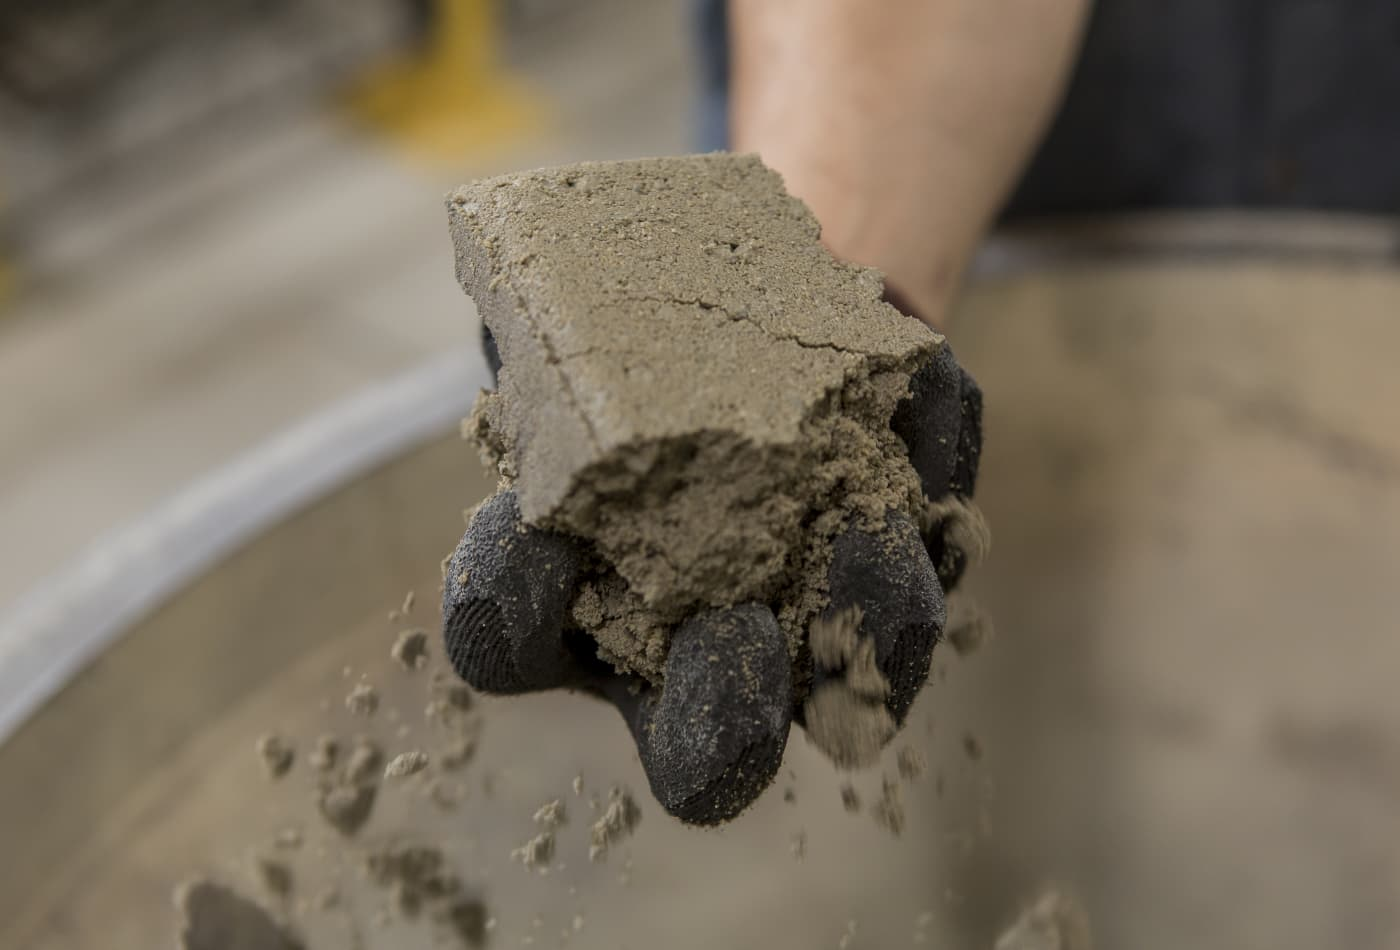 This green cement locks in carbon dioxide as it cures instead of releasing it into the air